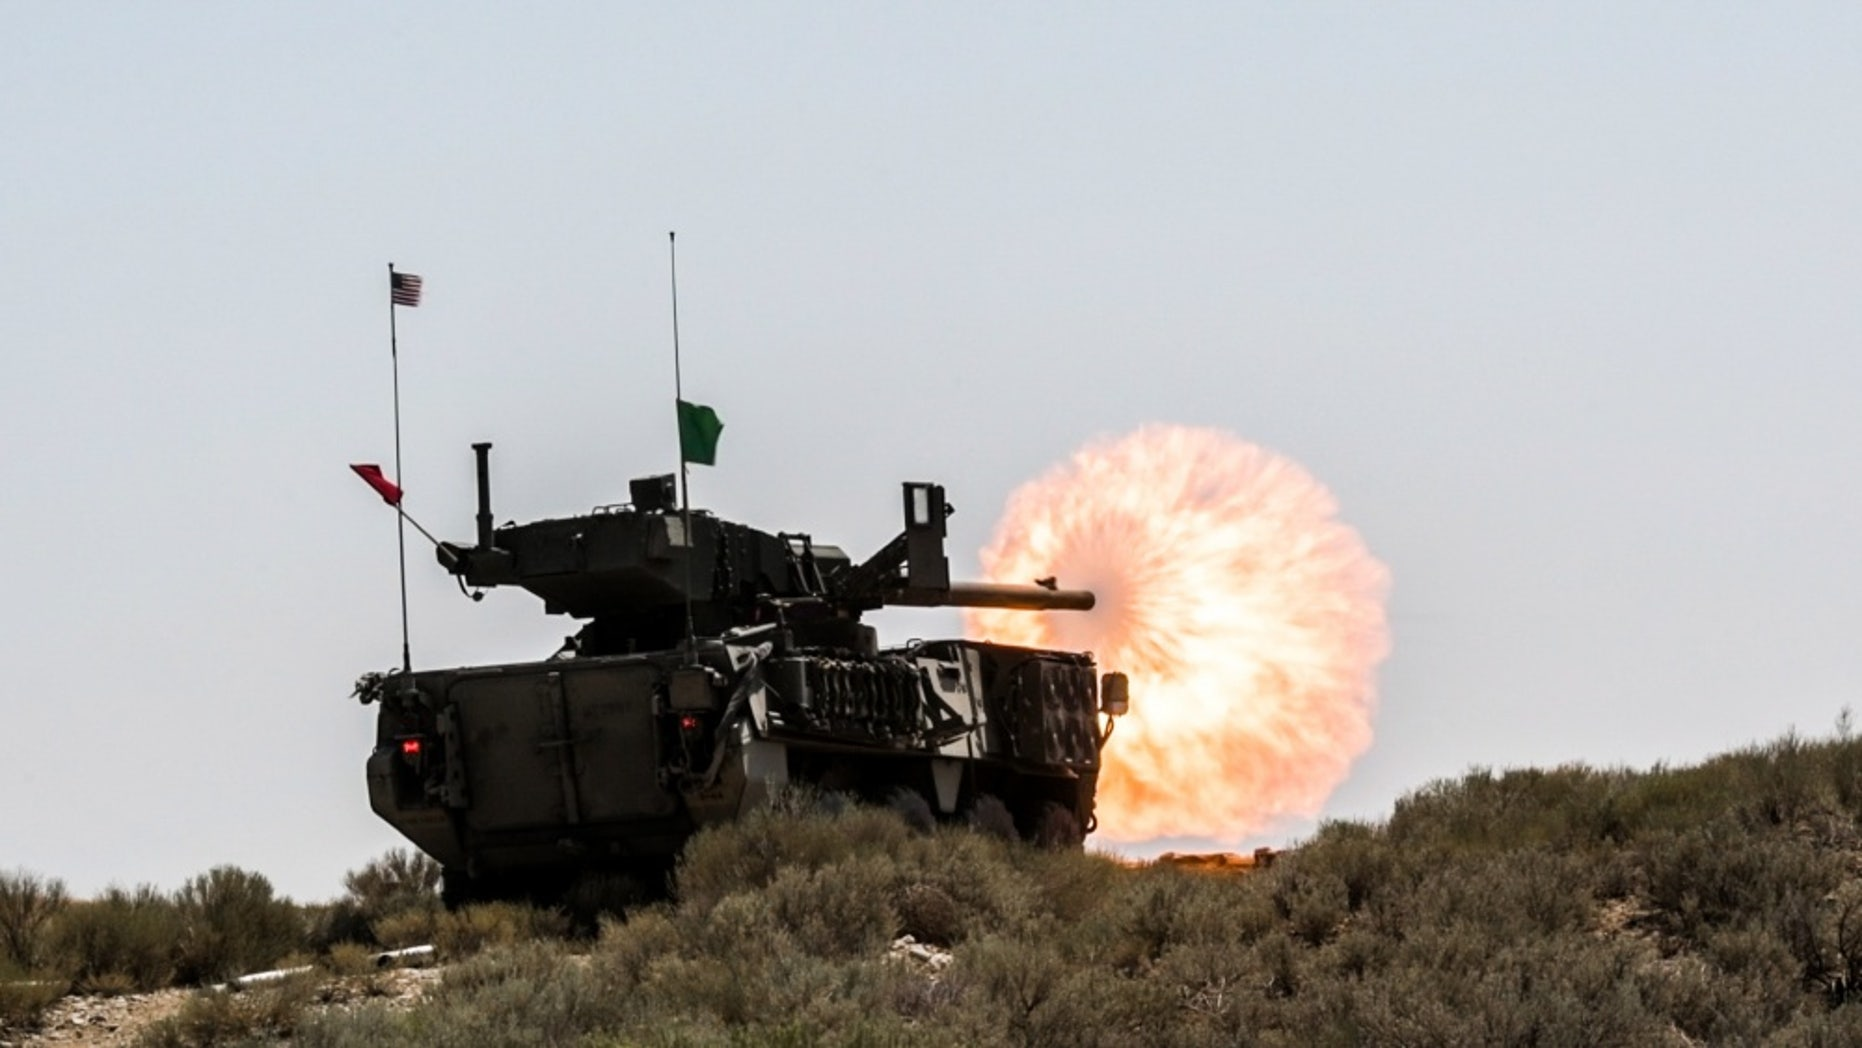 File photo - An M1128 Stryker Mobile Gun System, with 1st Squadron, 82nd Cavalry Regiment, Oregon Army National Guard, shoots it's 105mm cannon during a live-fire exercise during the squadron's annual training, July 26, 2018, at Orchard Combat Training Center near Boise, Idaho.(Oregon Army National Guard photo by Staff Sgt. Zachary Holden, Oregon Military Department Public Affairs)